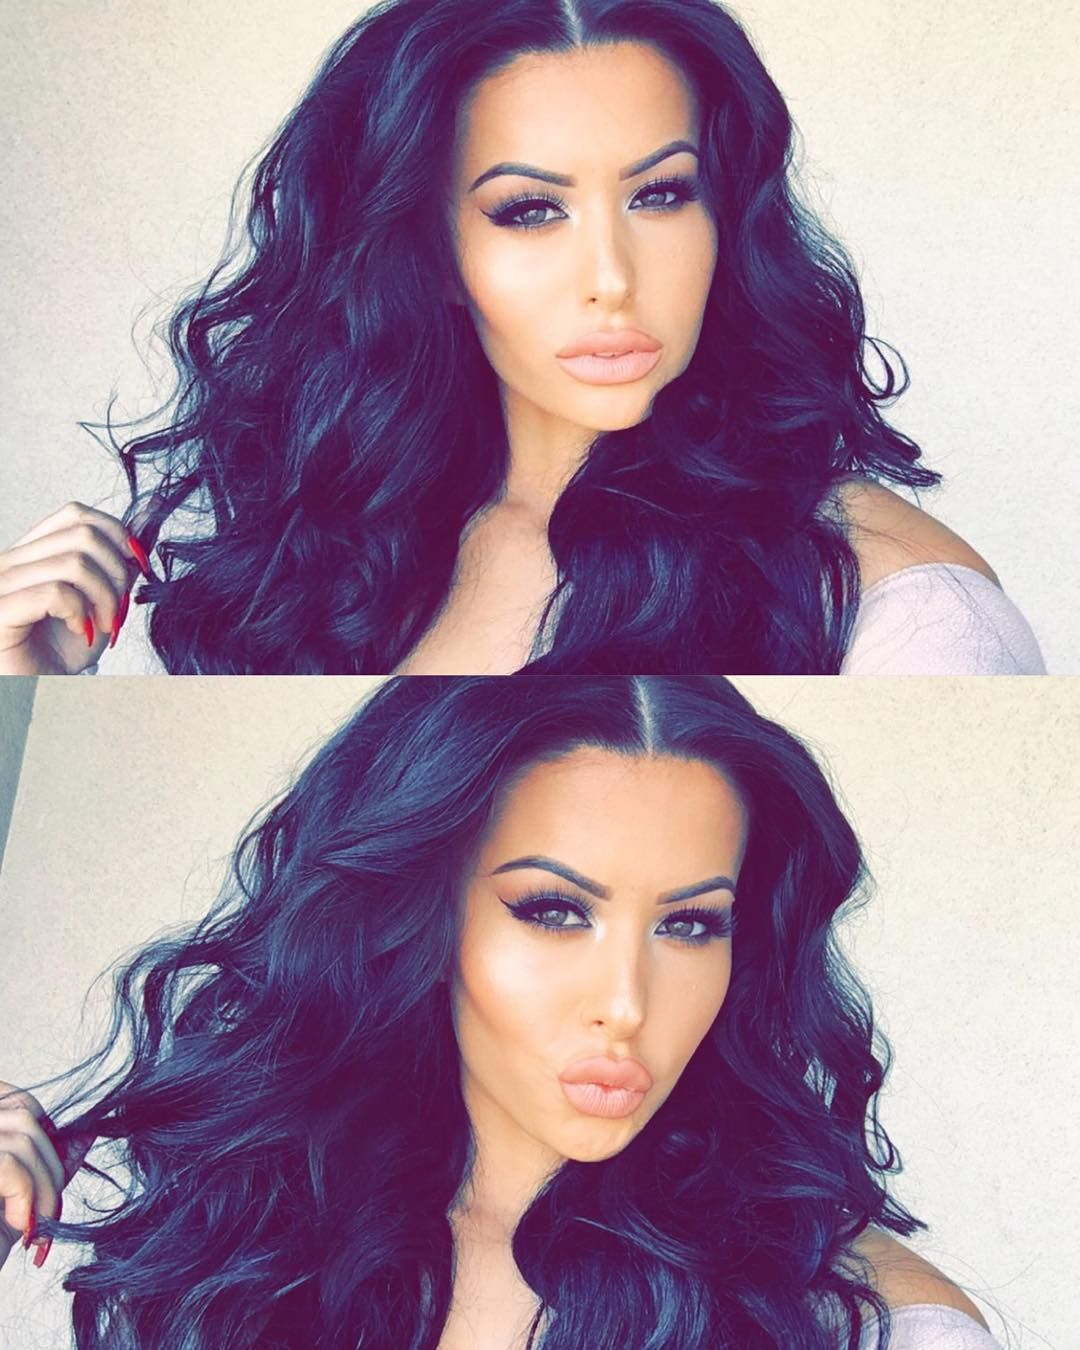 The Beautiful LA MUA Amrezy Doing Her Thing and Looking Amazing!!  #makeup #fashion #Instagram